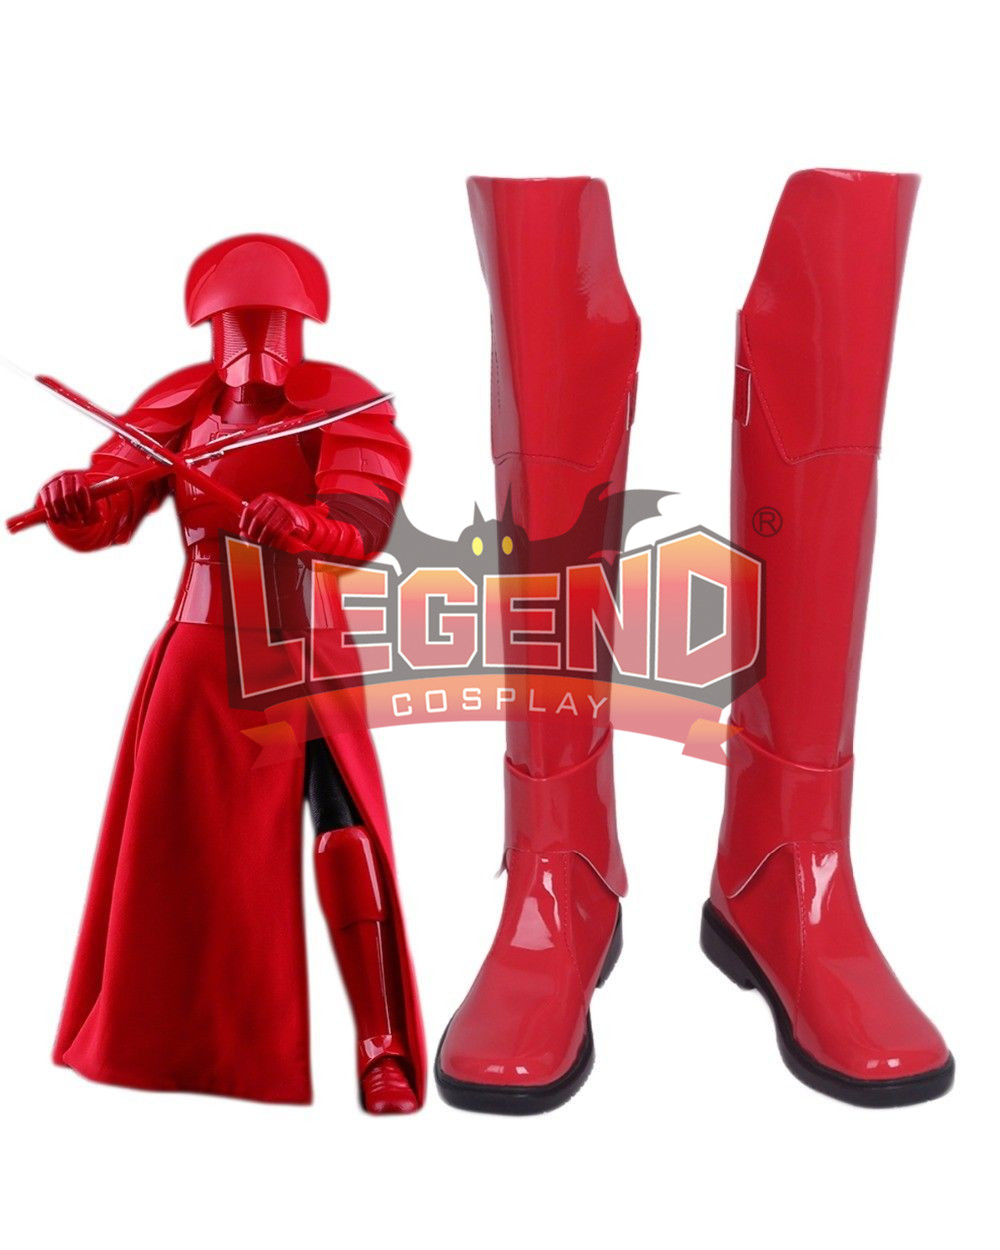 Star Wars: The Last Jedi Praetorian Guard Cosplay Shoes Boots Superhero Halloween Carnival Party Costume